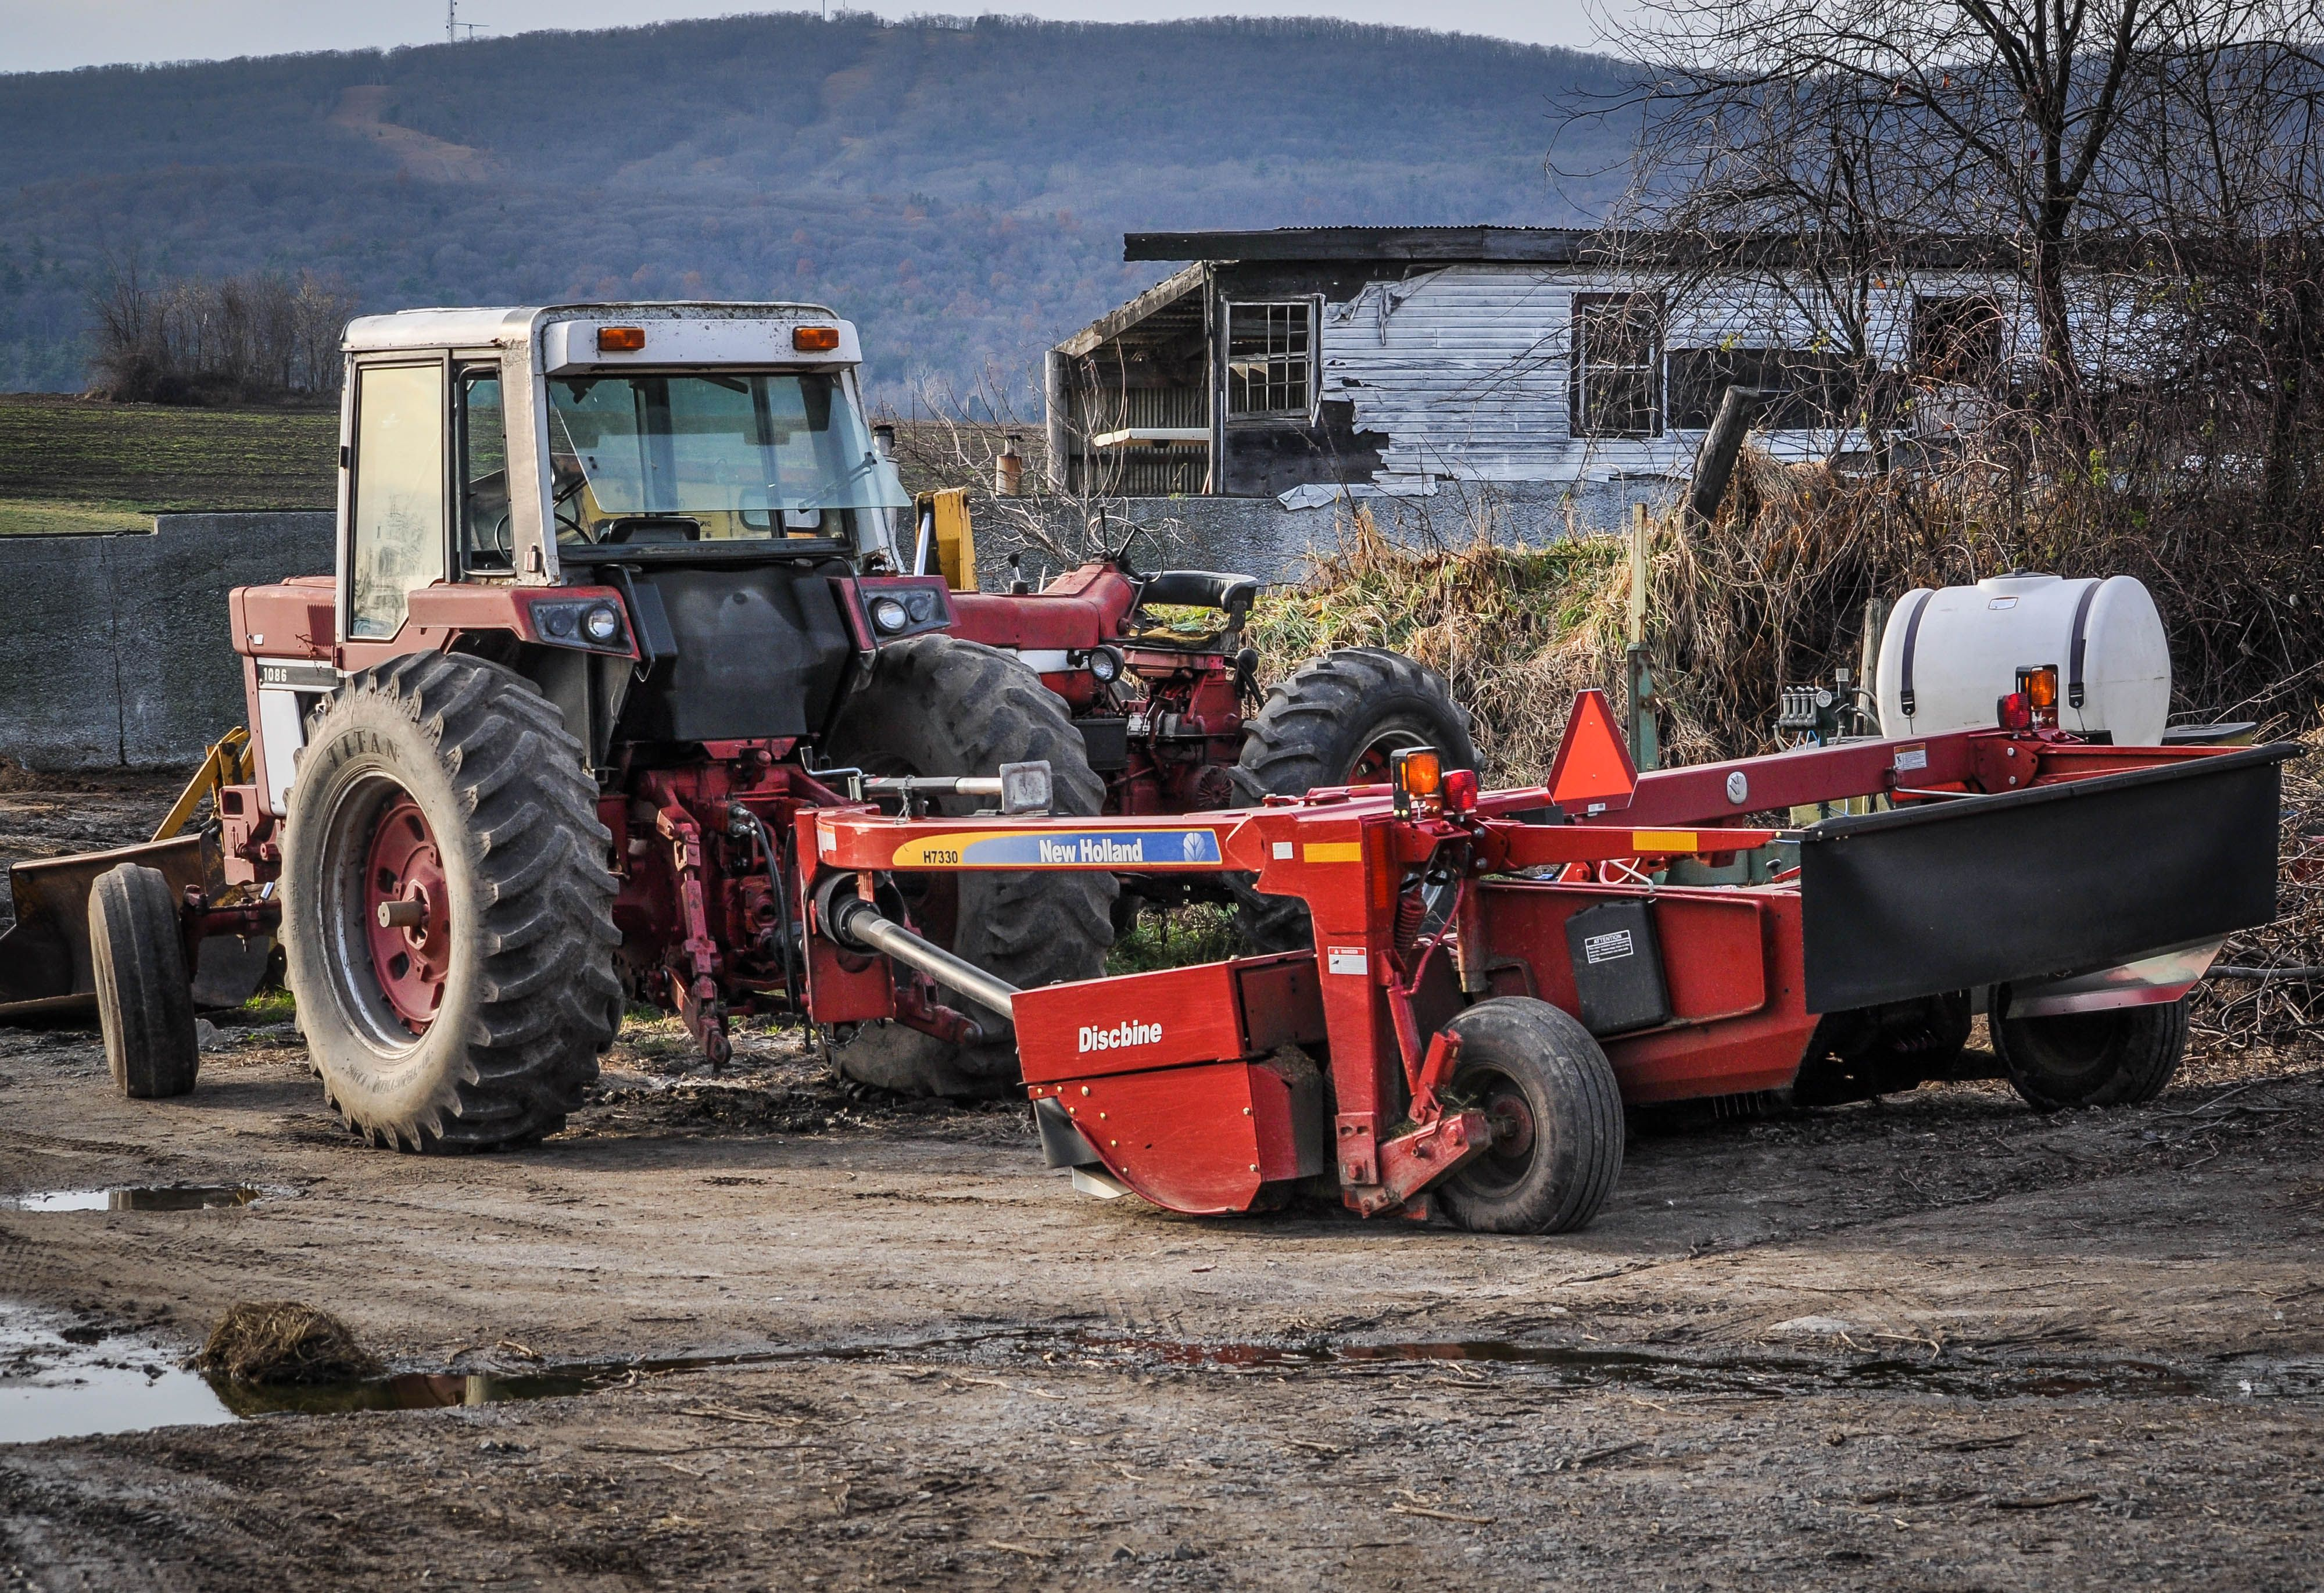 waverly holland case Messicks is the unquestionable leader in providing case ih and new holland parts support over the internet rather than relying on the corporate parts website, we've crafted our own solutions that are faster and easier to use.